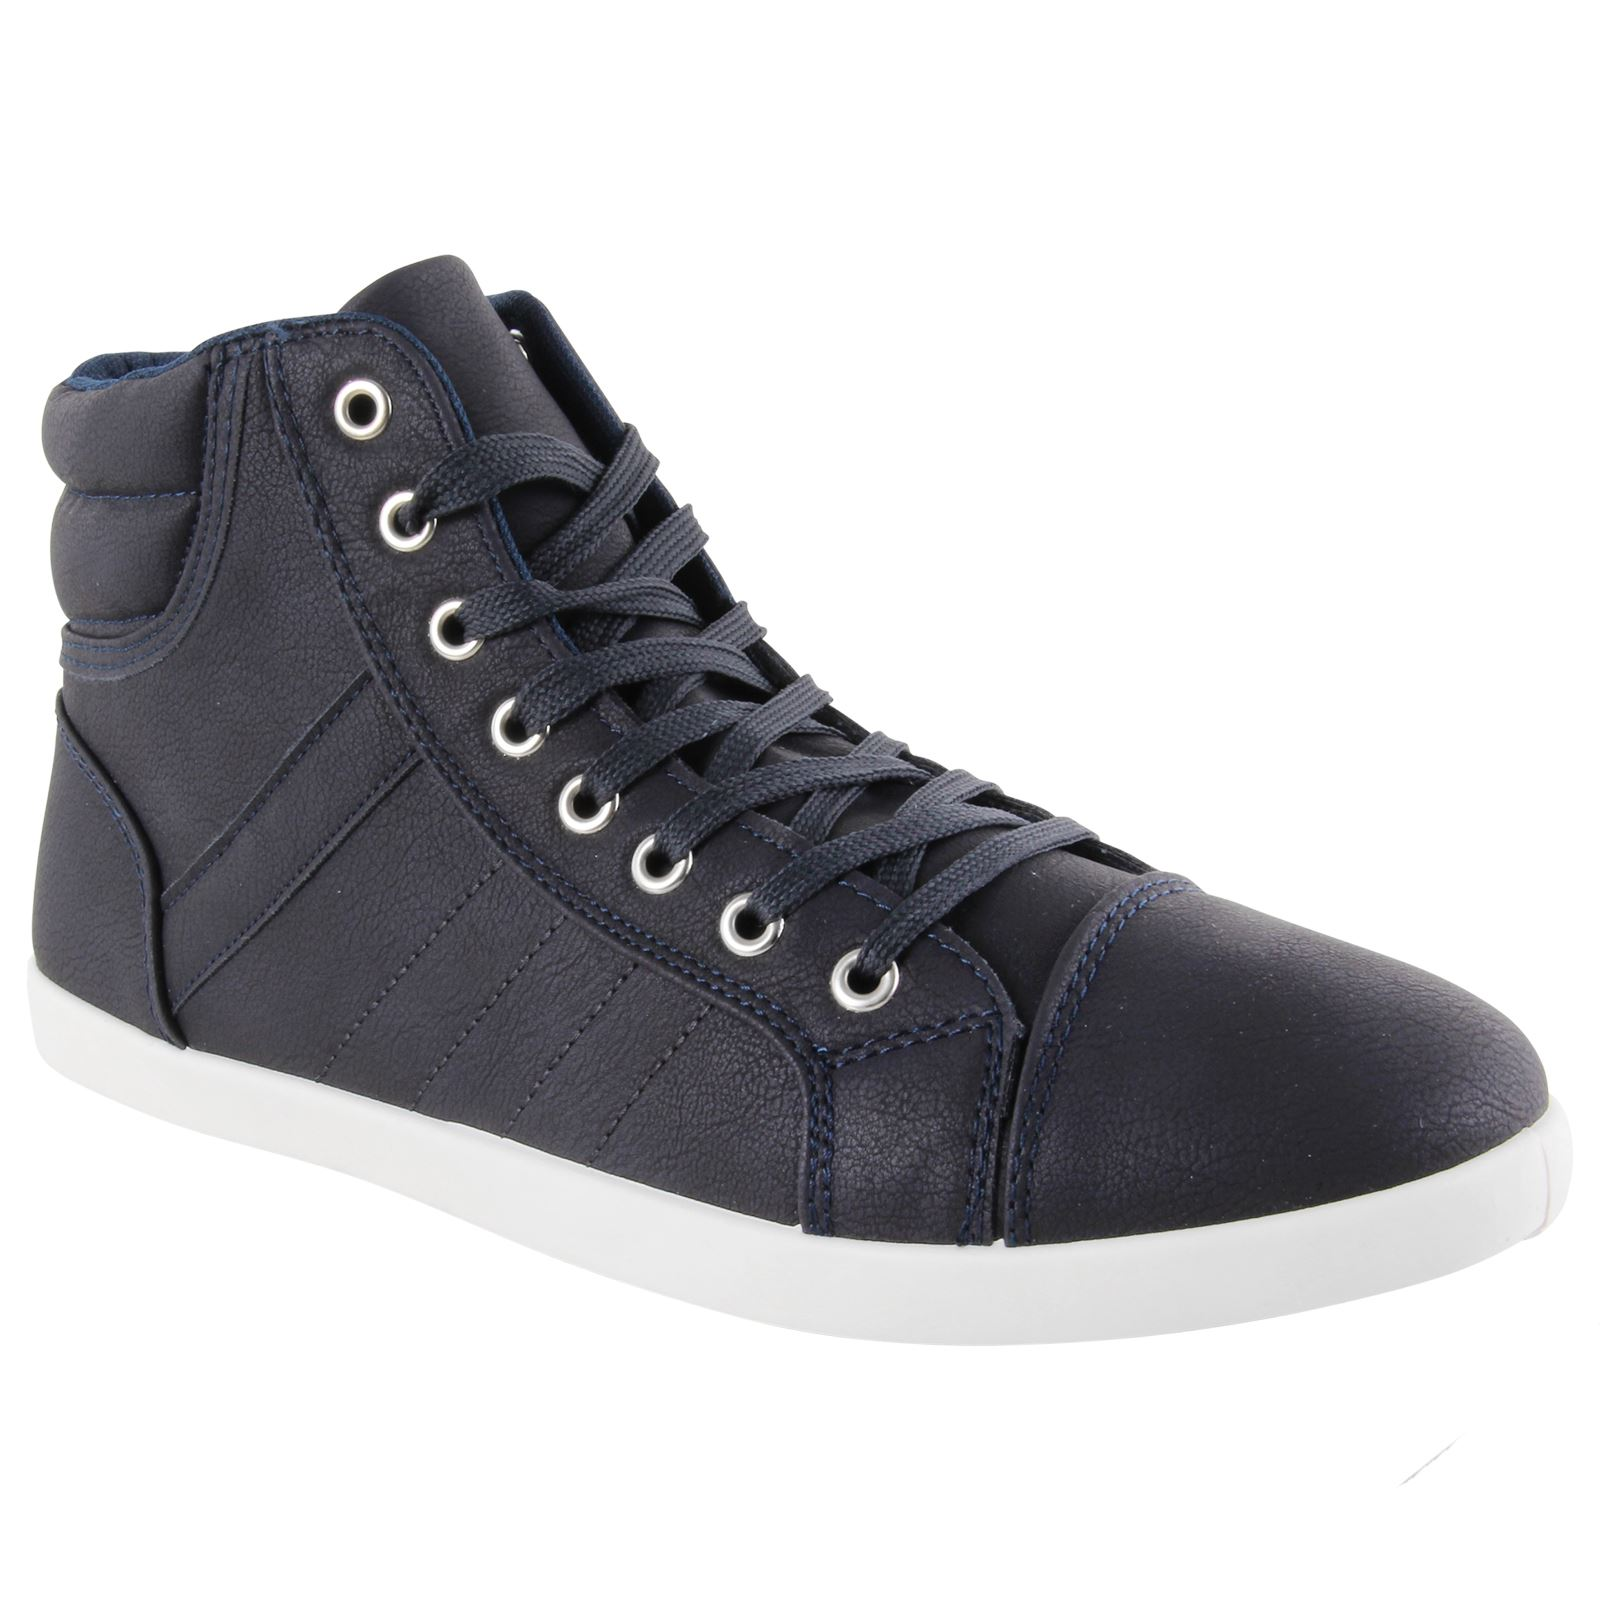 The designer sneaker boot by Glimms is inspired by fashion's most cutting-edge sneaker designs. Constructed from authentic leather in a matte black with subtle suede accents. Features the high-top sneaker trend with zippers on both sides.